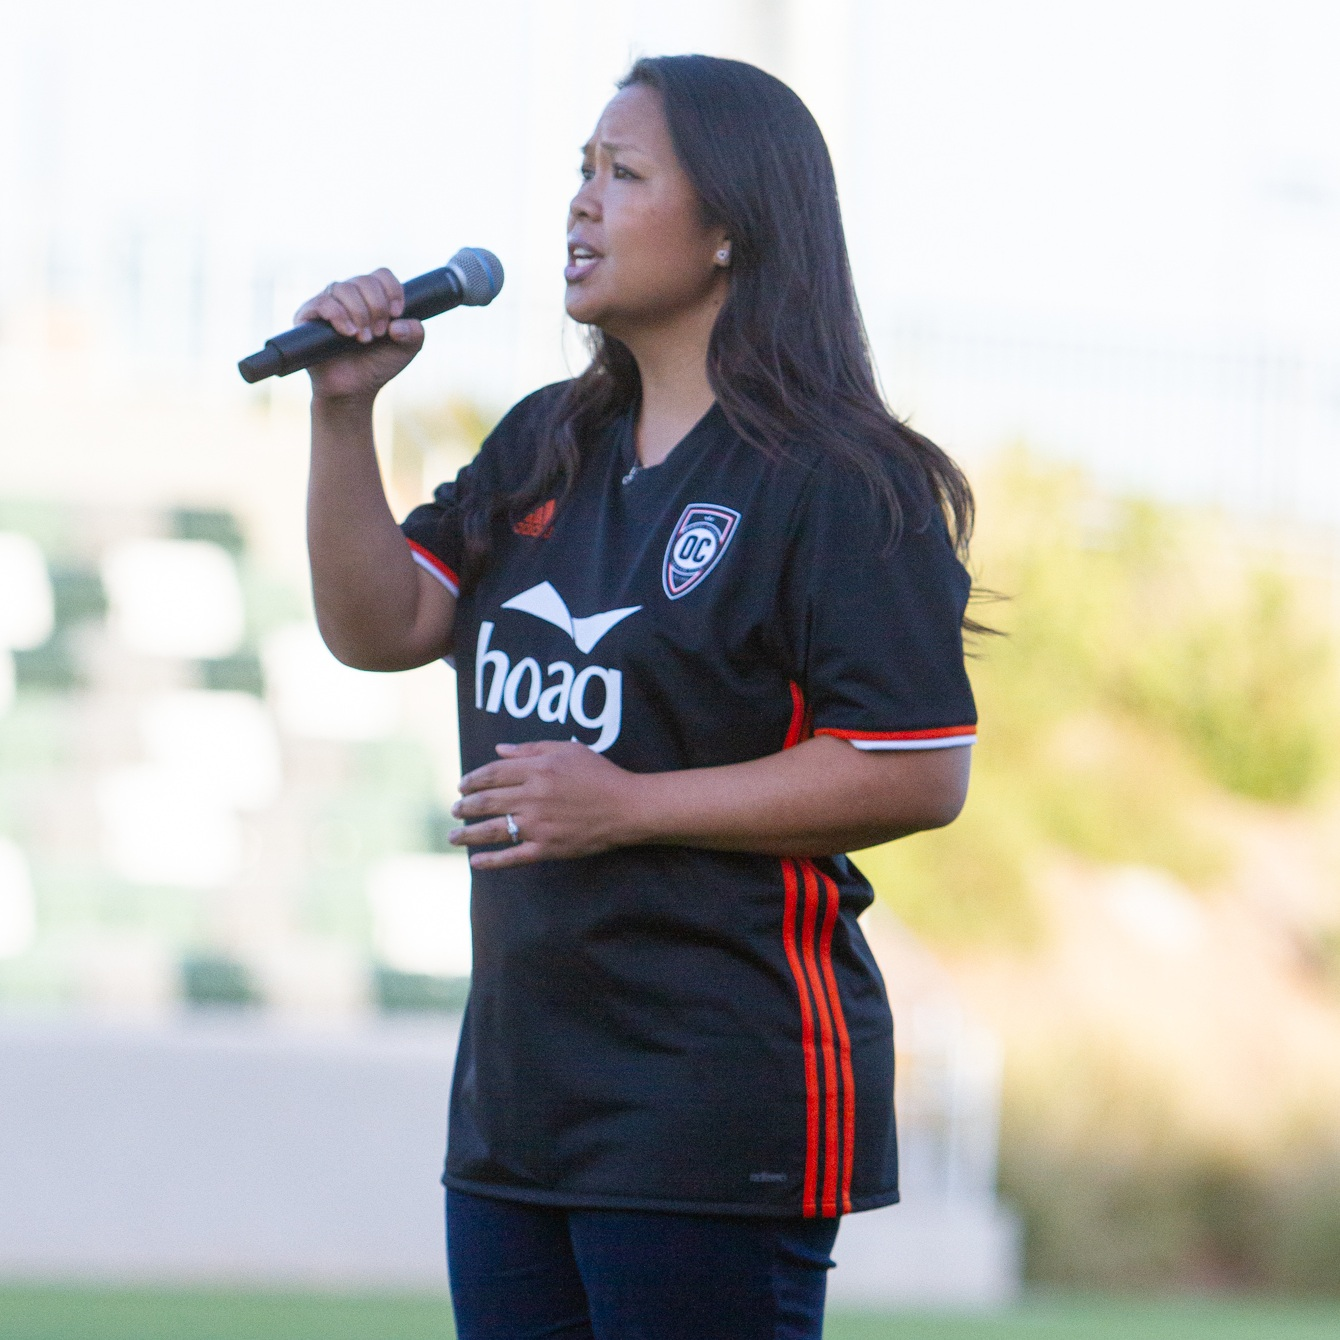 Katrina sings the national anthem at a recent match at Championship Soccer Stadium. | Photo courtesy of Orange County SC/Liza Rosales